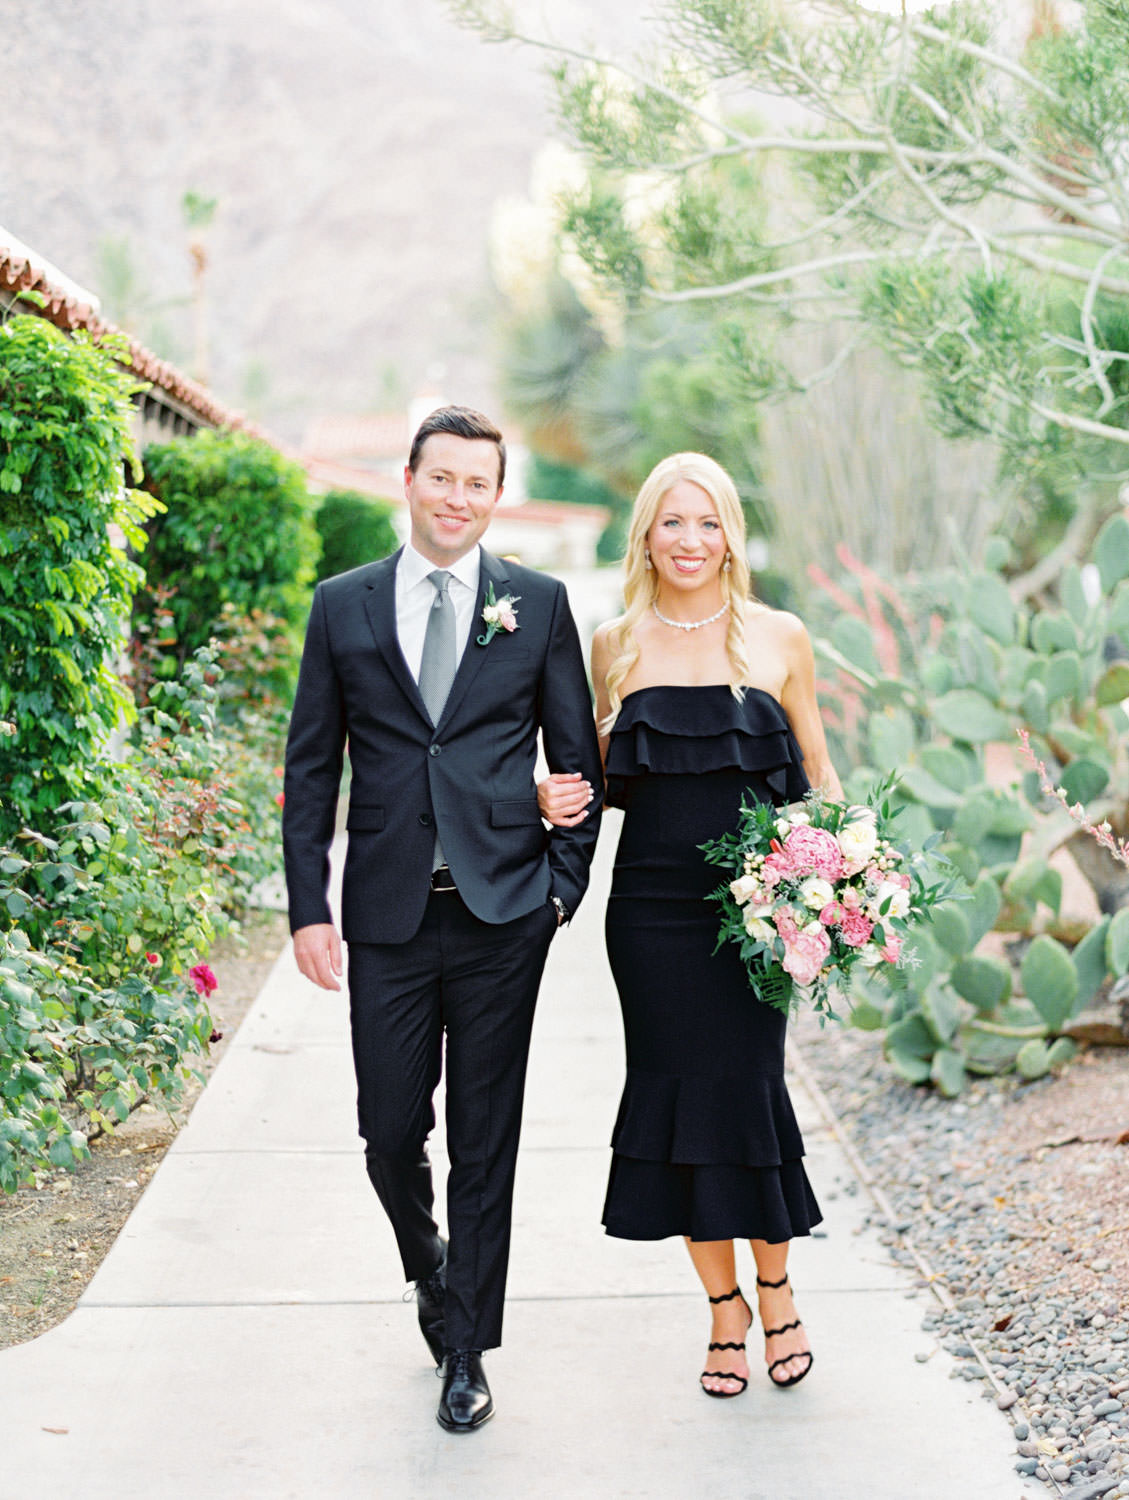 Bride holding ivory, pink, and green bouquet wearing a black strapless dress and black heels and groom in black suit in a cactus garden. La Quinta Resort Engagement Photos on Film by Cavin Elizabeth Photography